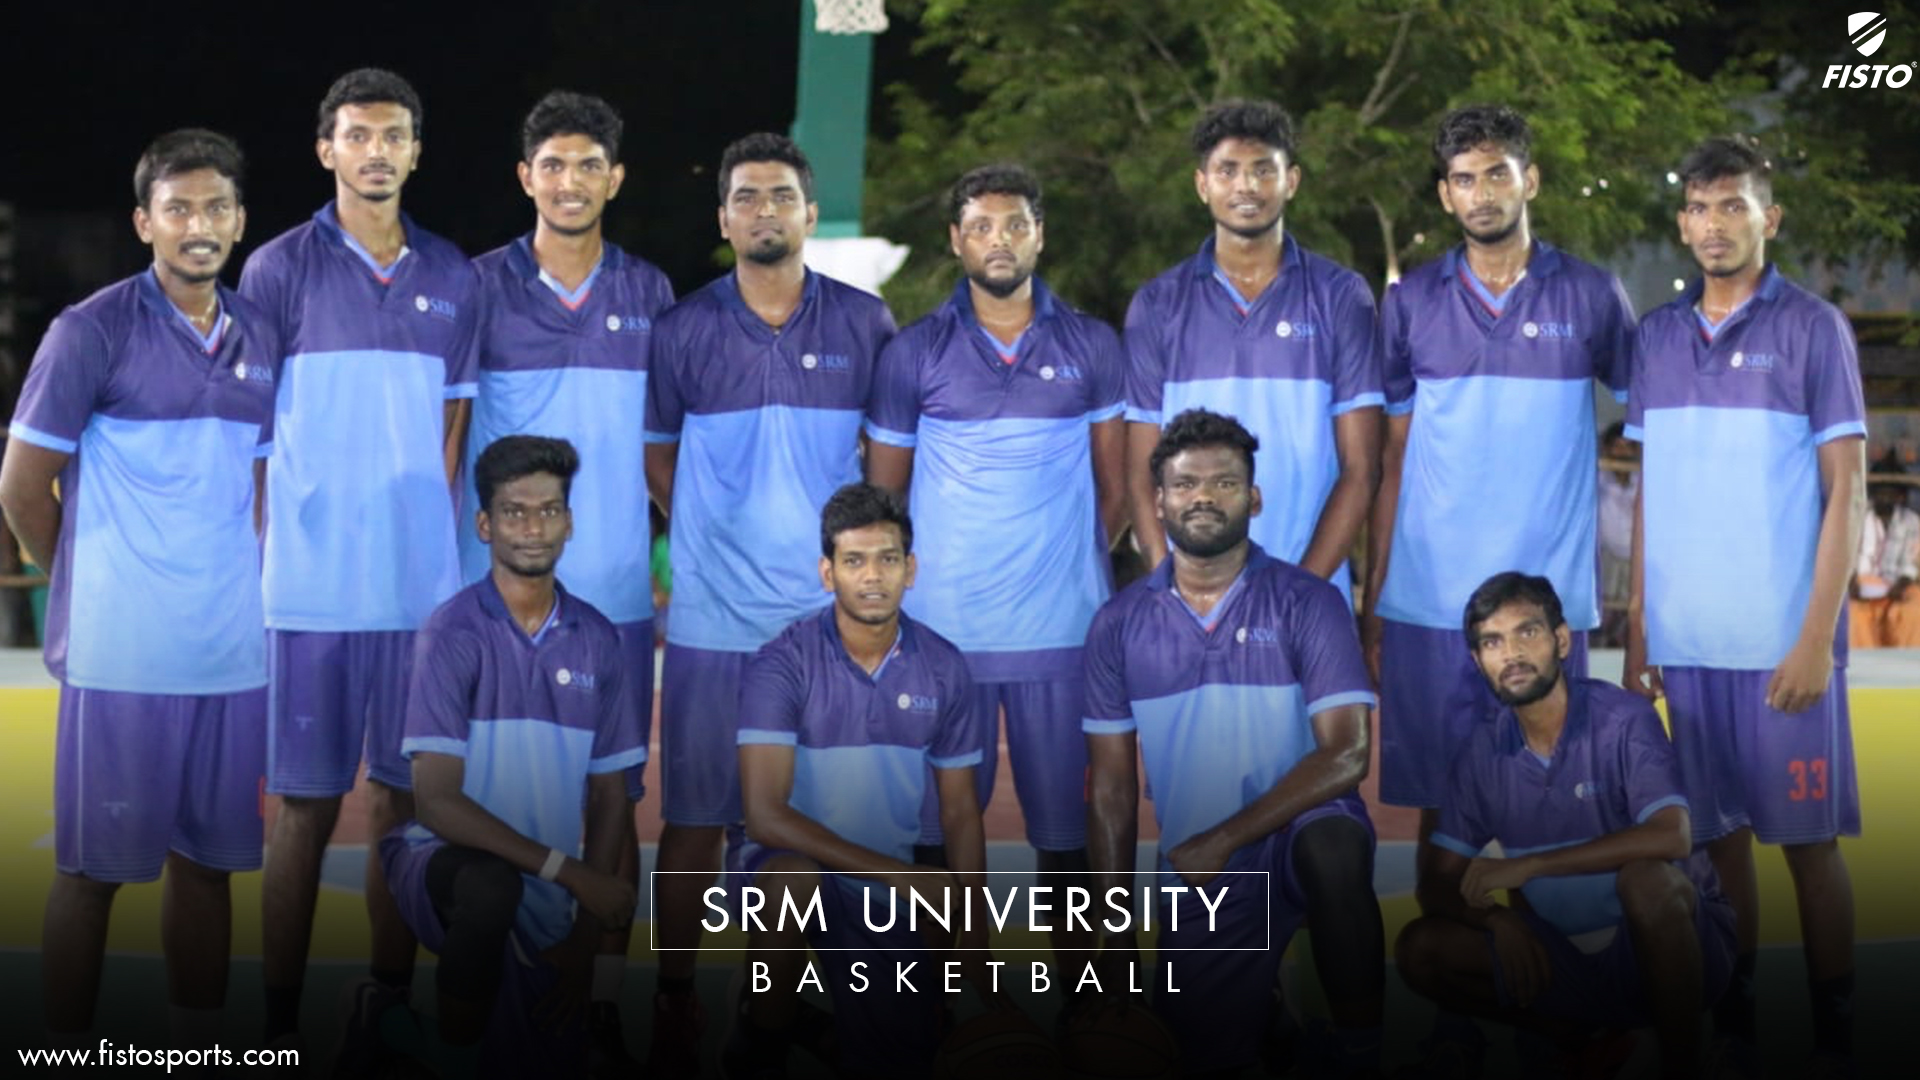 """""""We all believed in one, played as one and remained one throughout the season"""" – SRM University Basketball team"""